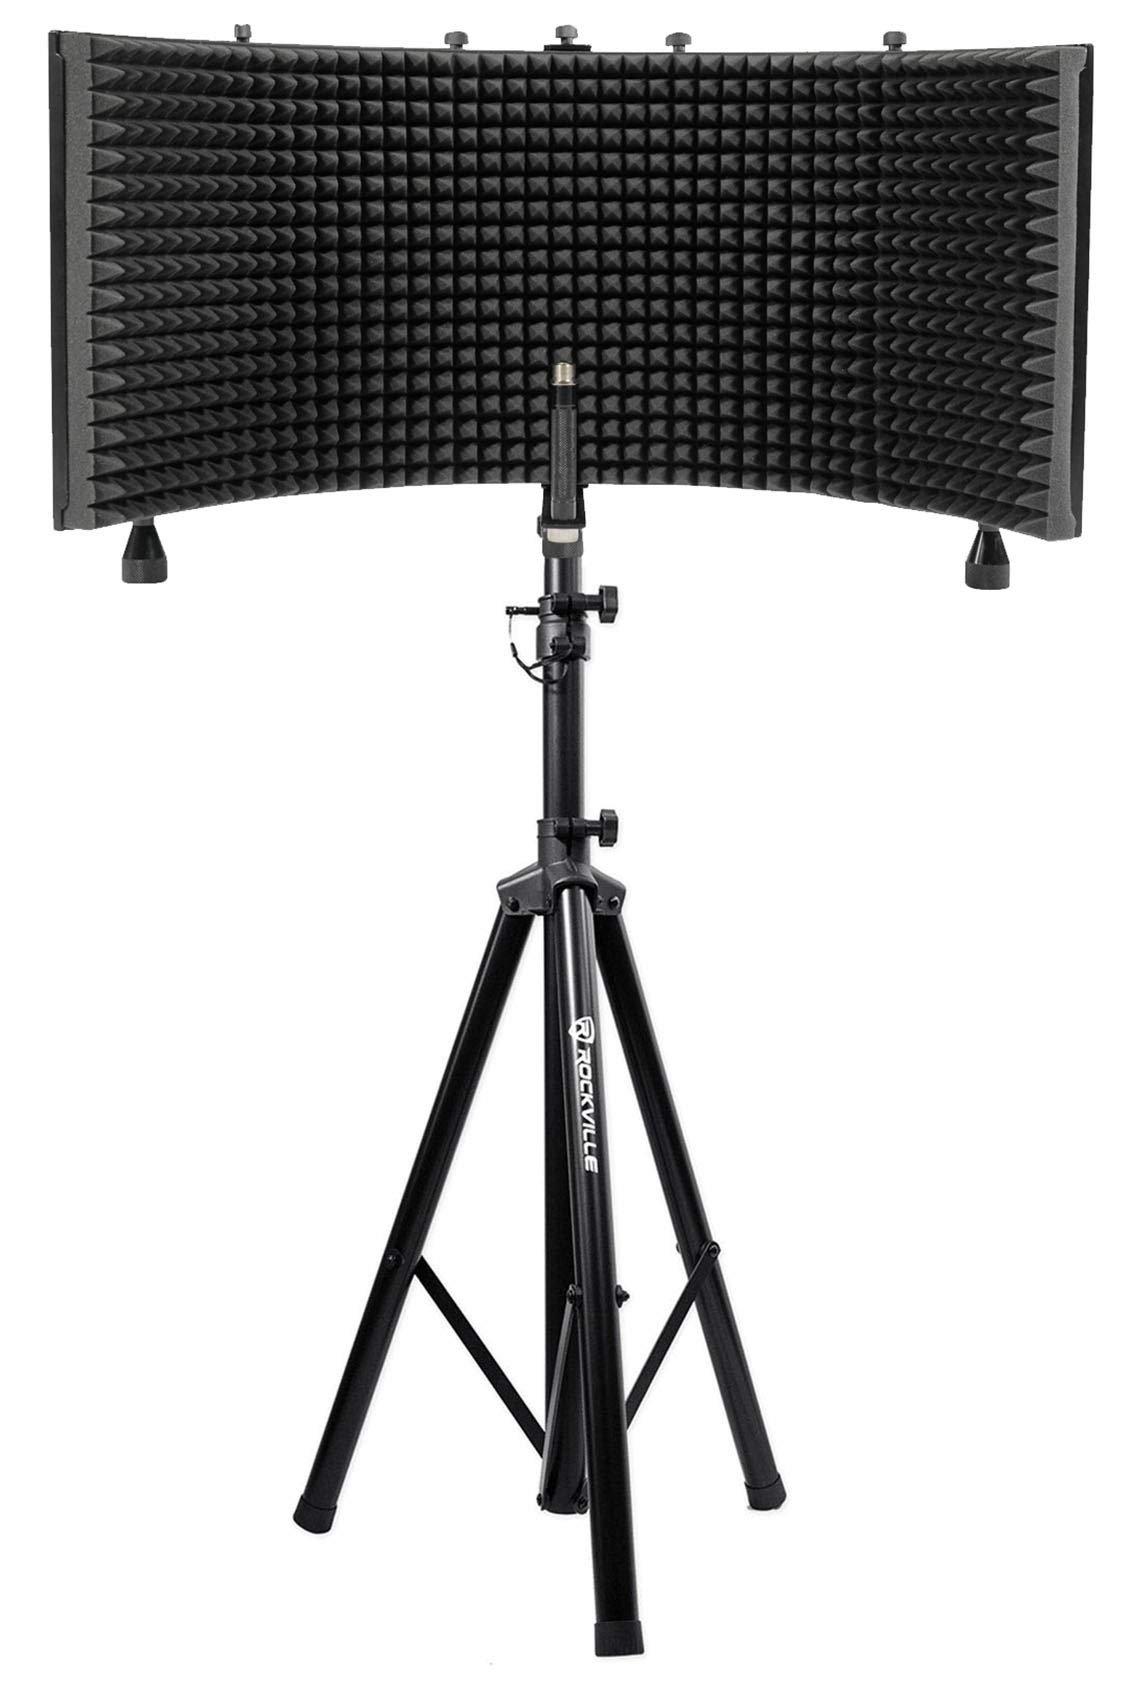 Rockville Recording Studio Microphone Isolation Shield + Heavy Duty Tripod Stand by Rockville (Image #1)